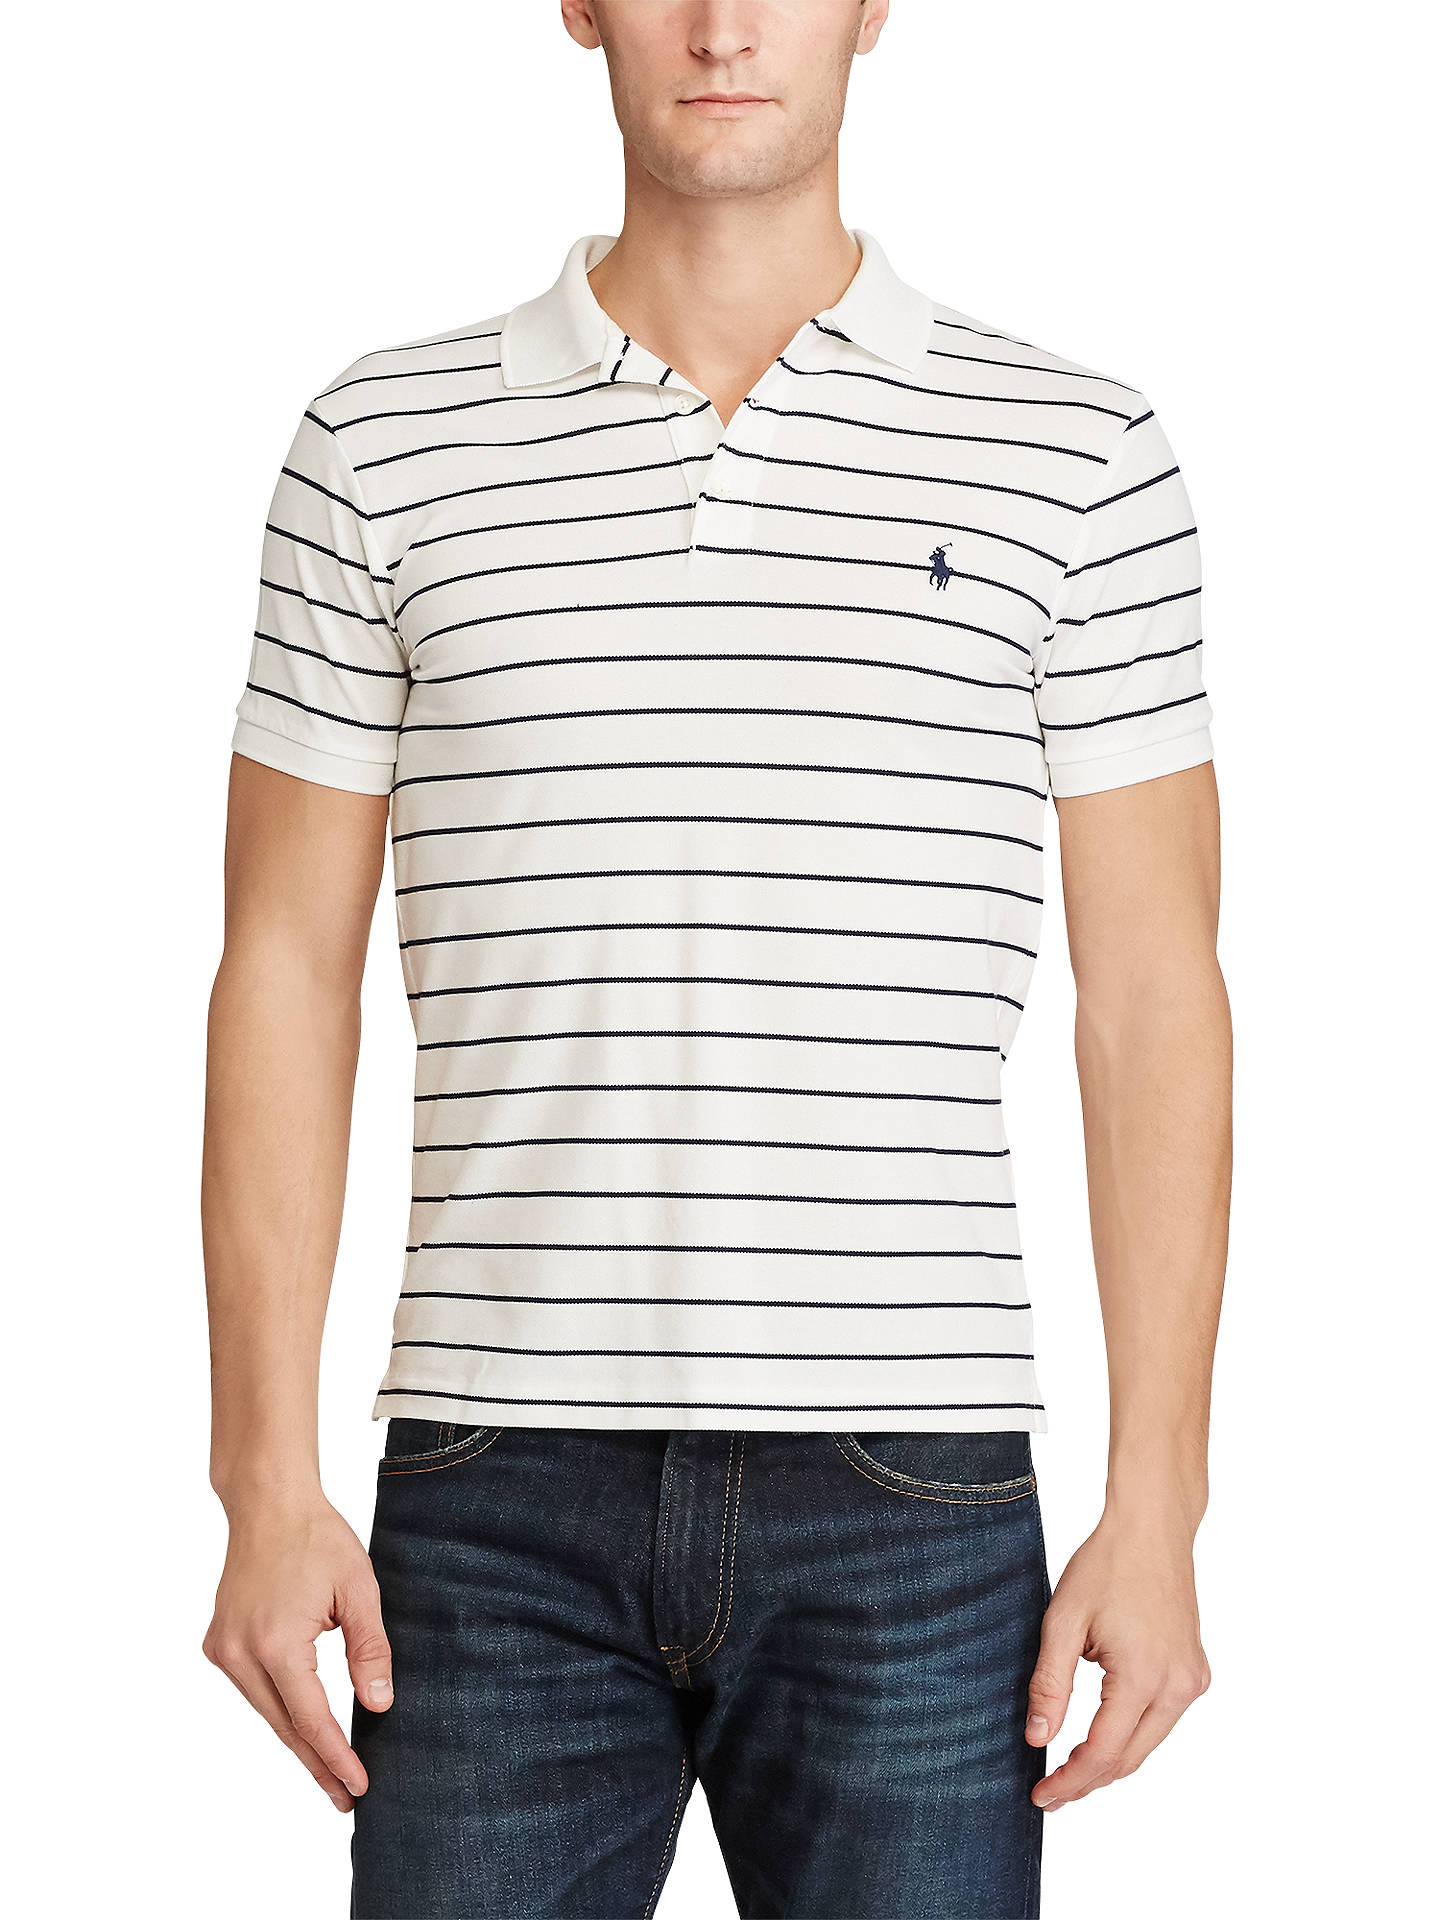 6996cbf164ff Buy Polo Ralph Lauren Striped Slim Fit Stretch Cotton Mesh Polo Shirt, White/Newport  ...